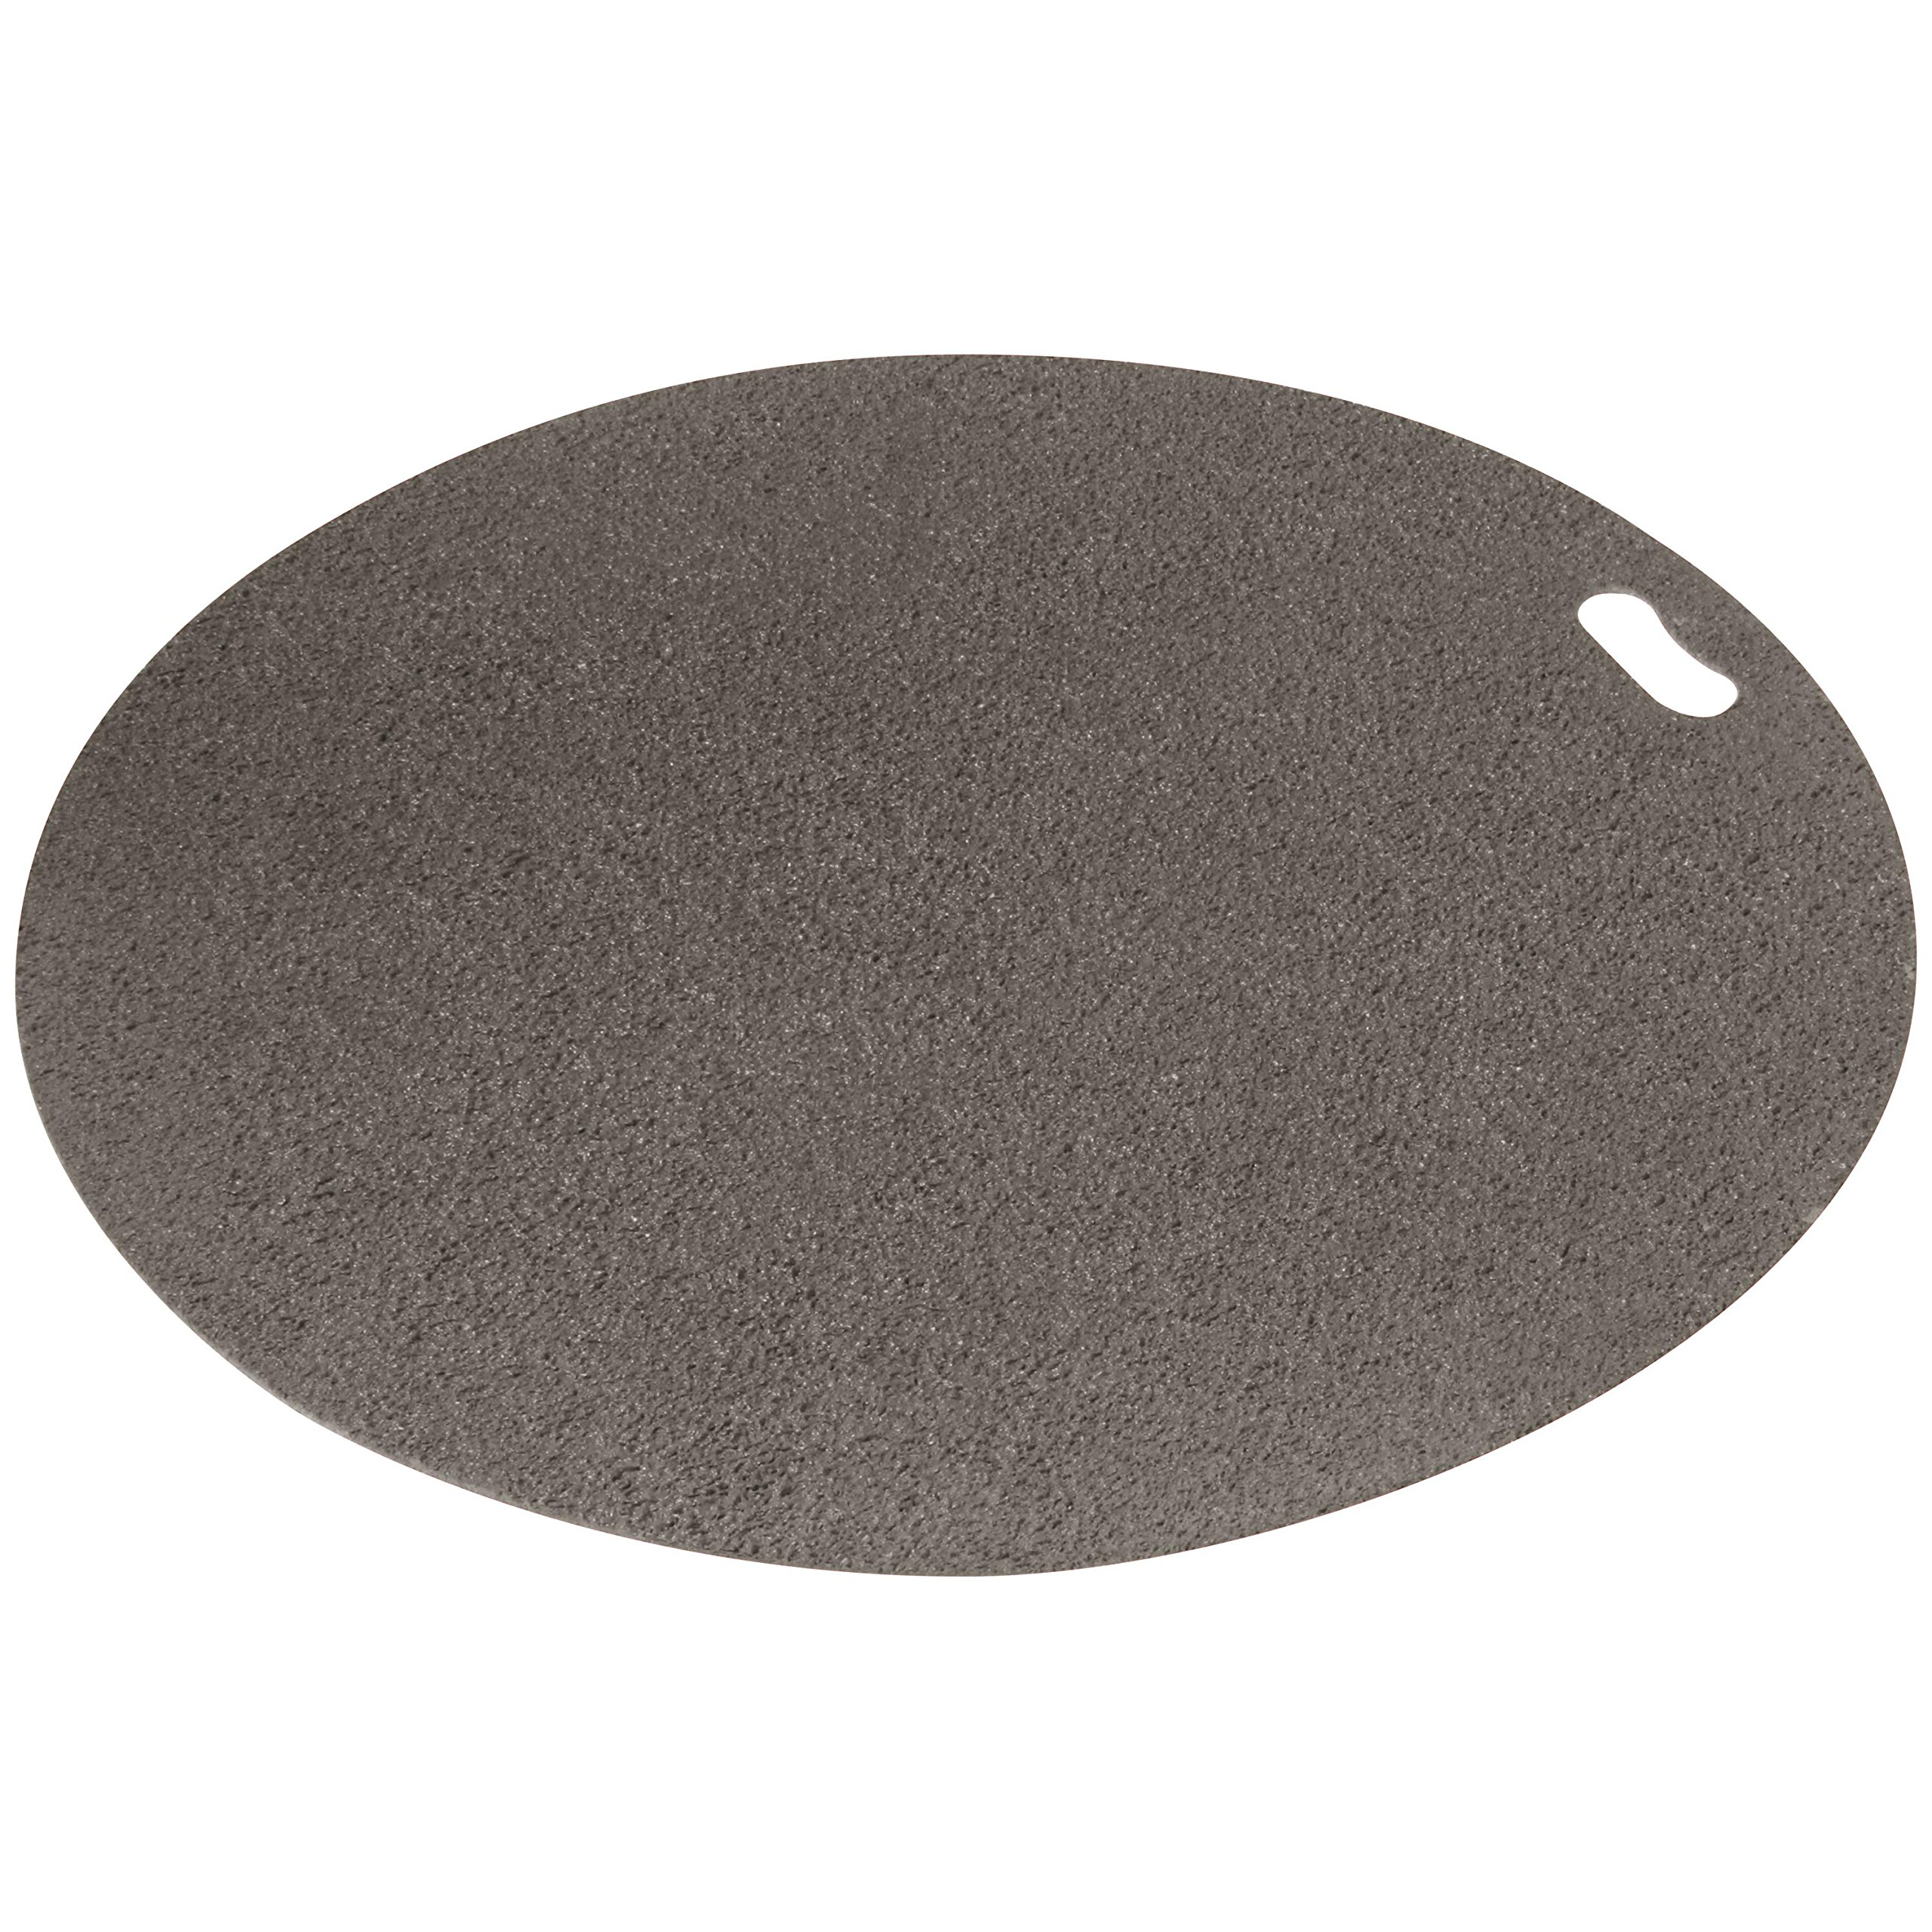 The Original Grill Pad Gray Grill Pad, Round by The Original Grill Pad